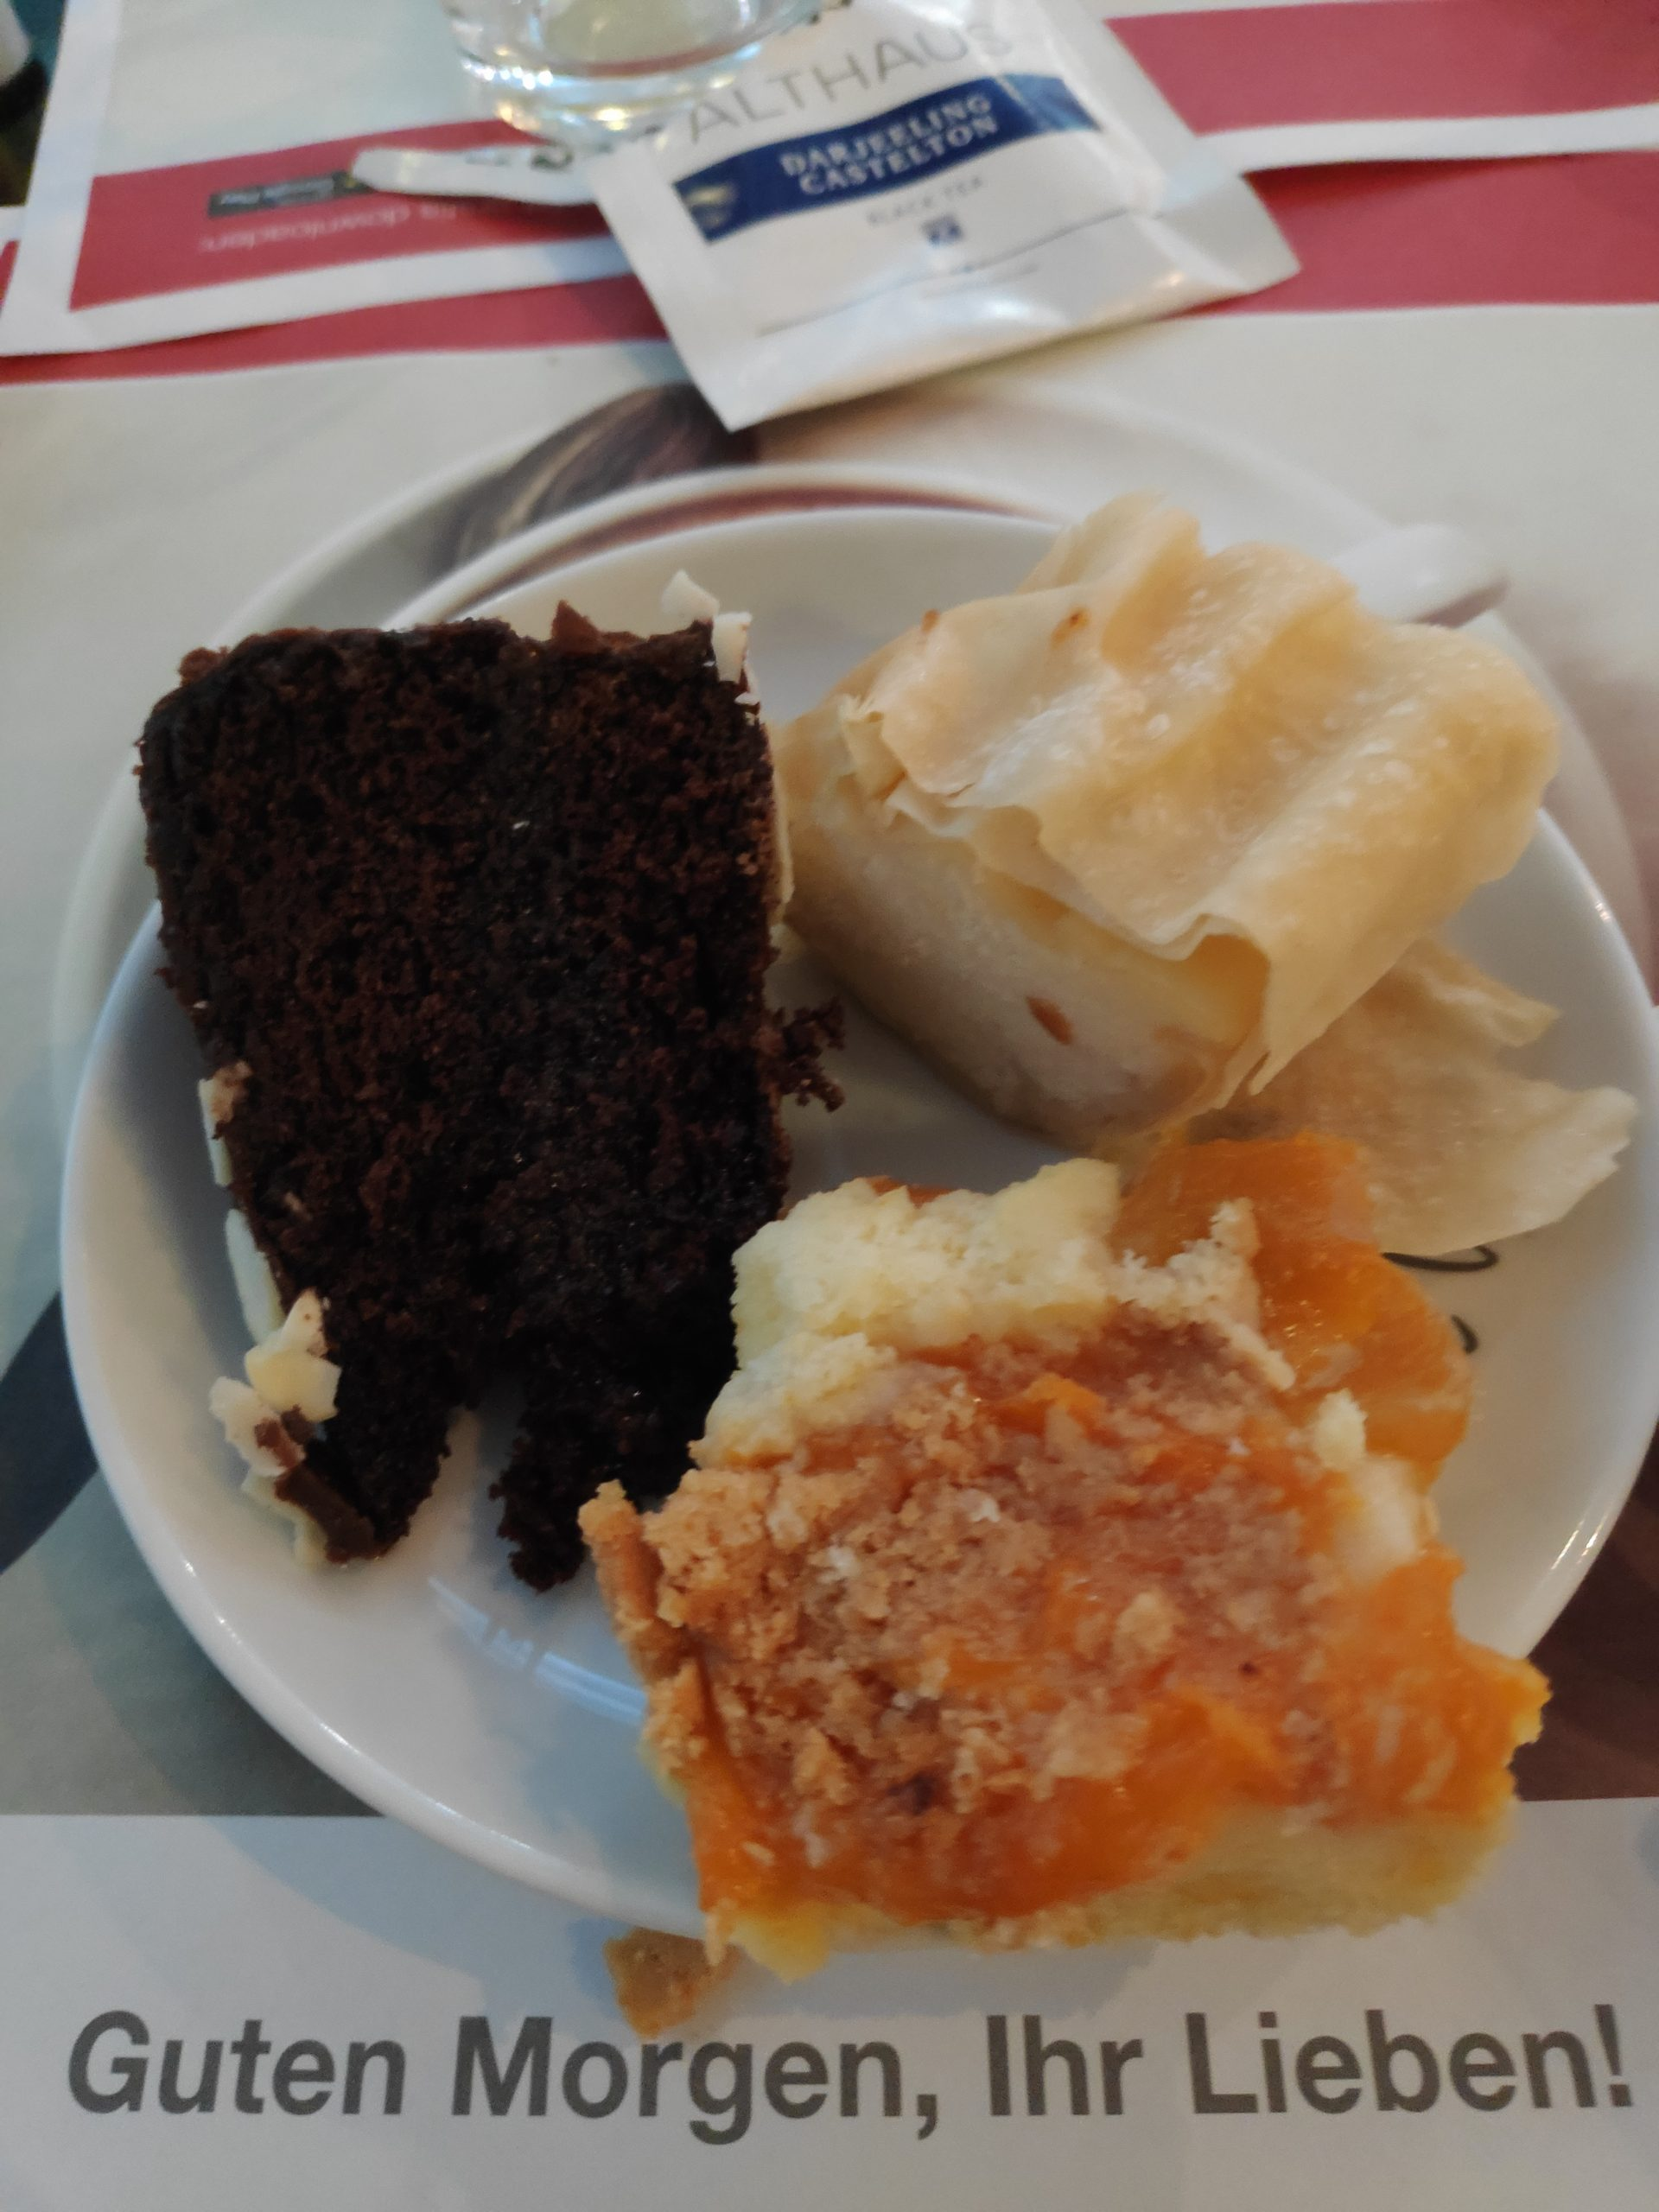 Strudel and cake for breakfast.